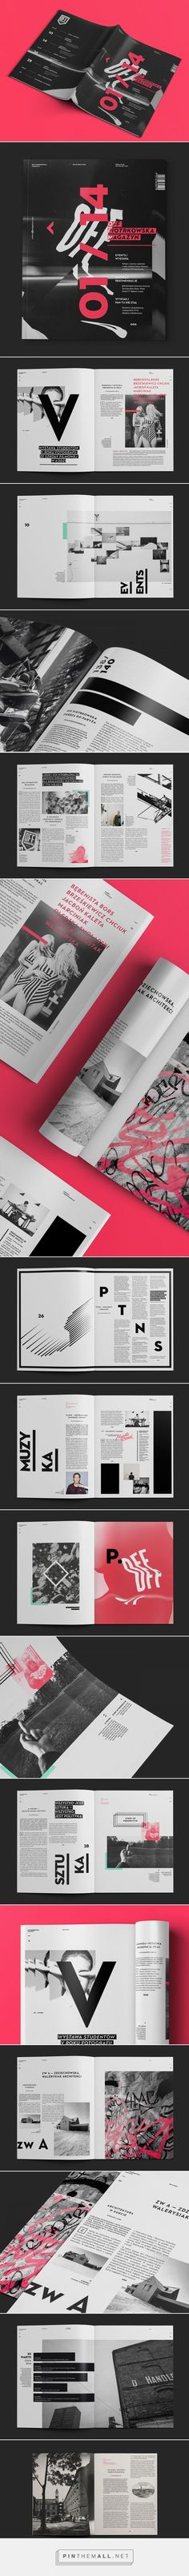 OFF Piotrkowska Magazine: PowerPoint Design Inspiration